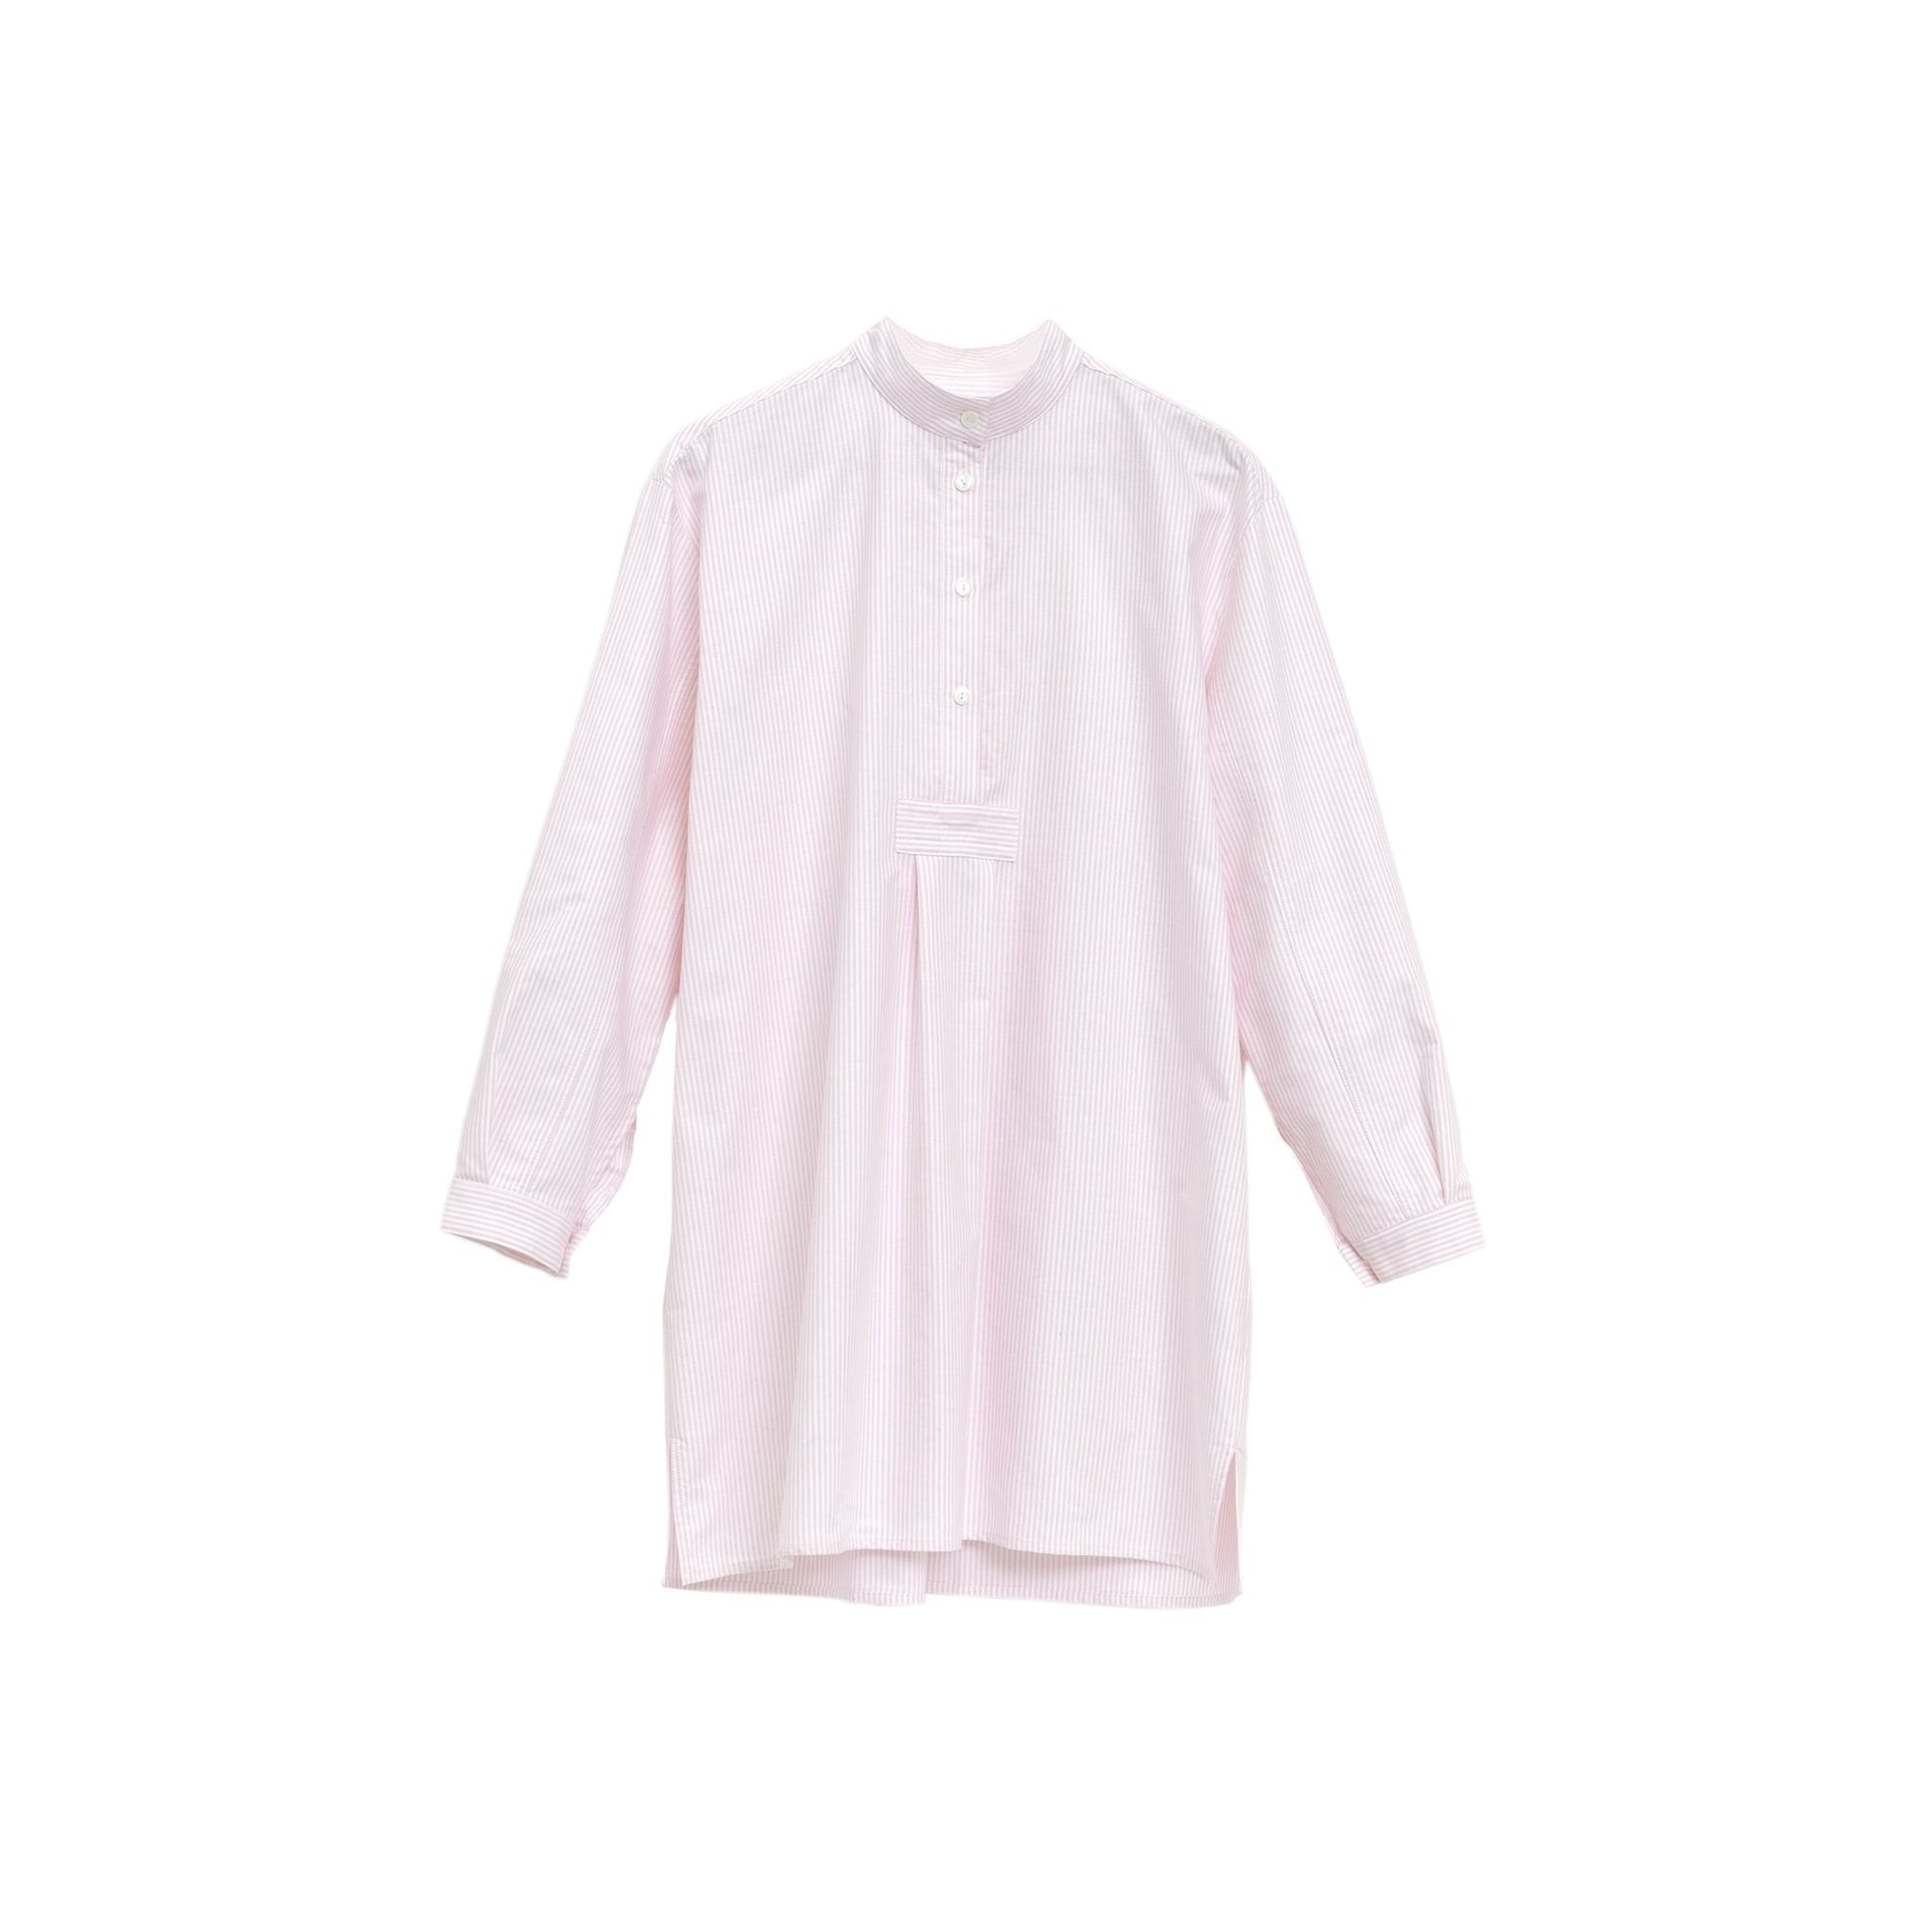 Short Sleep Shirt in Pink Oxford Stripe